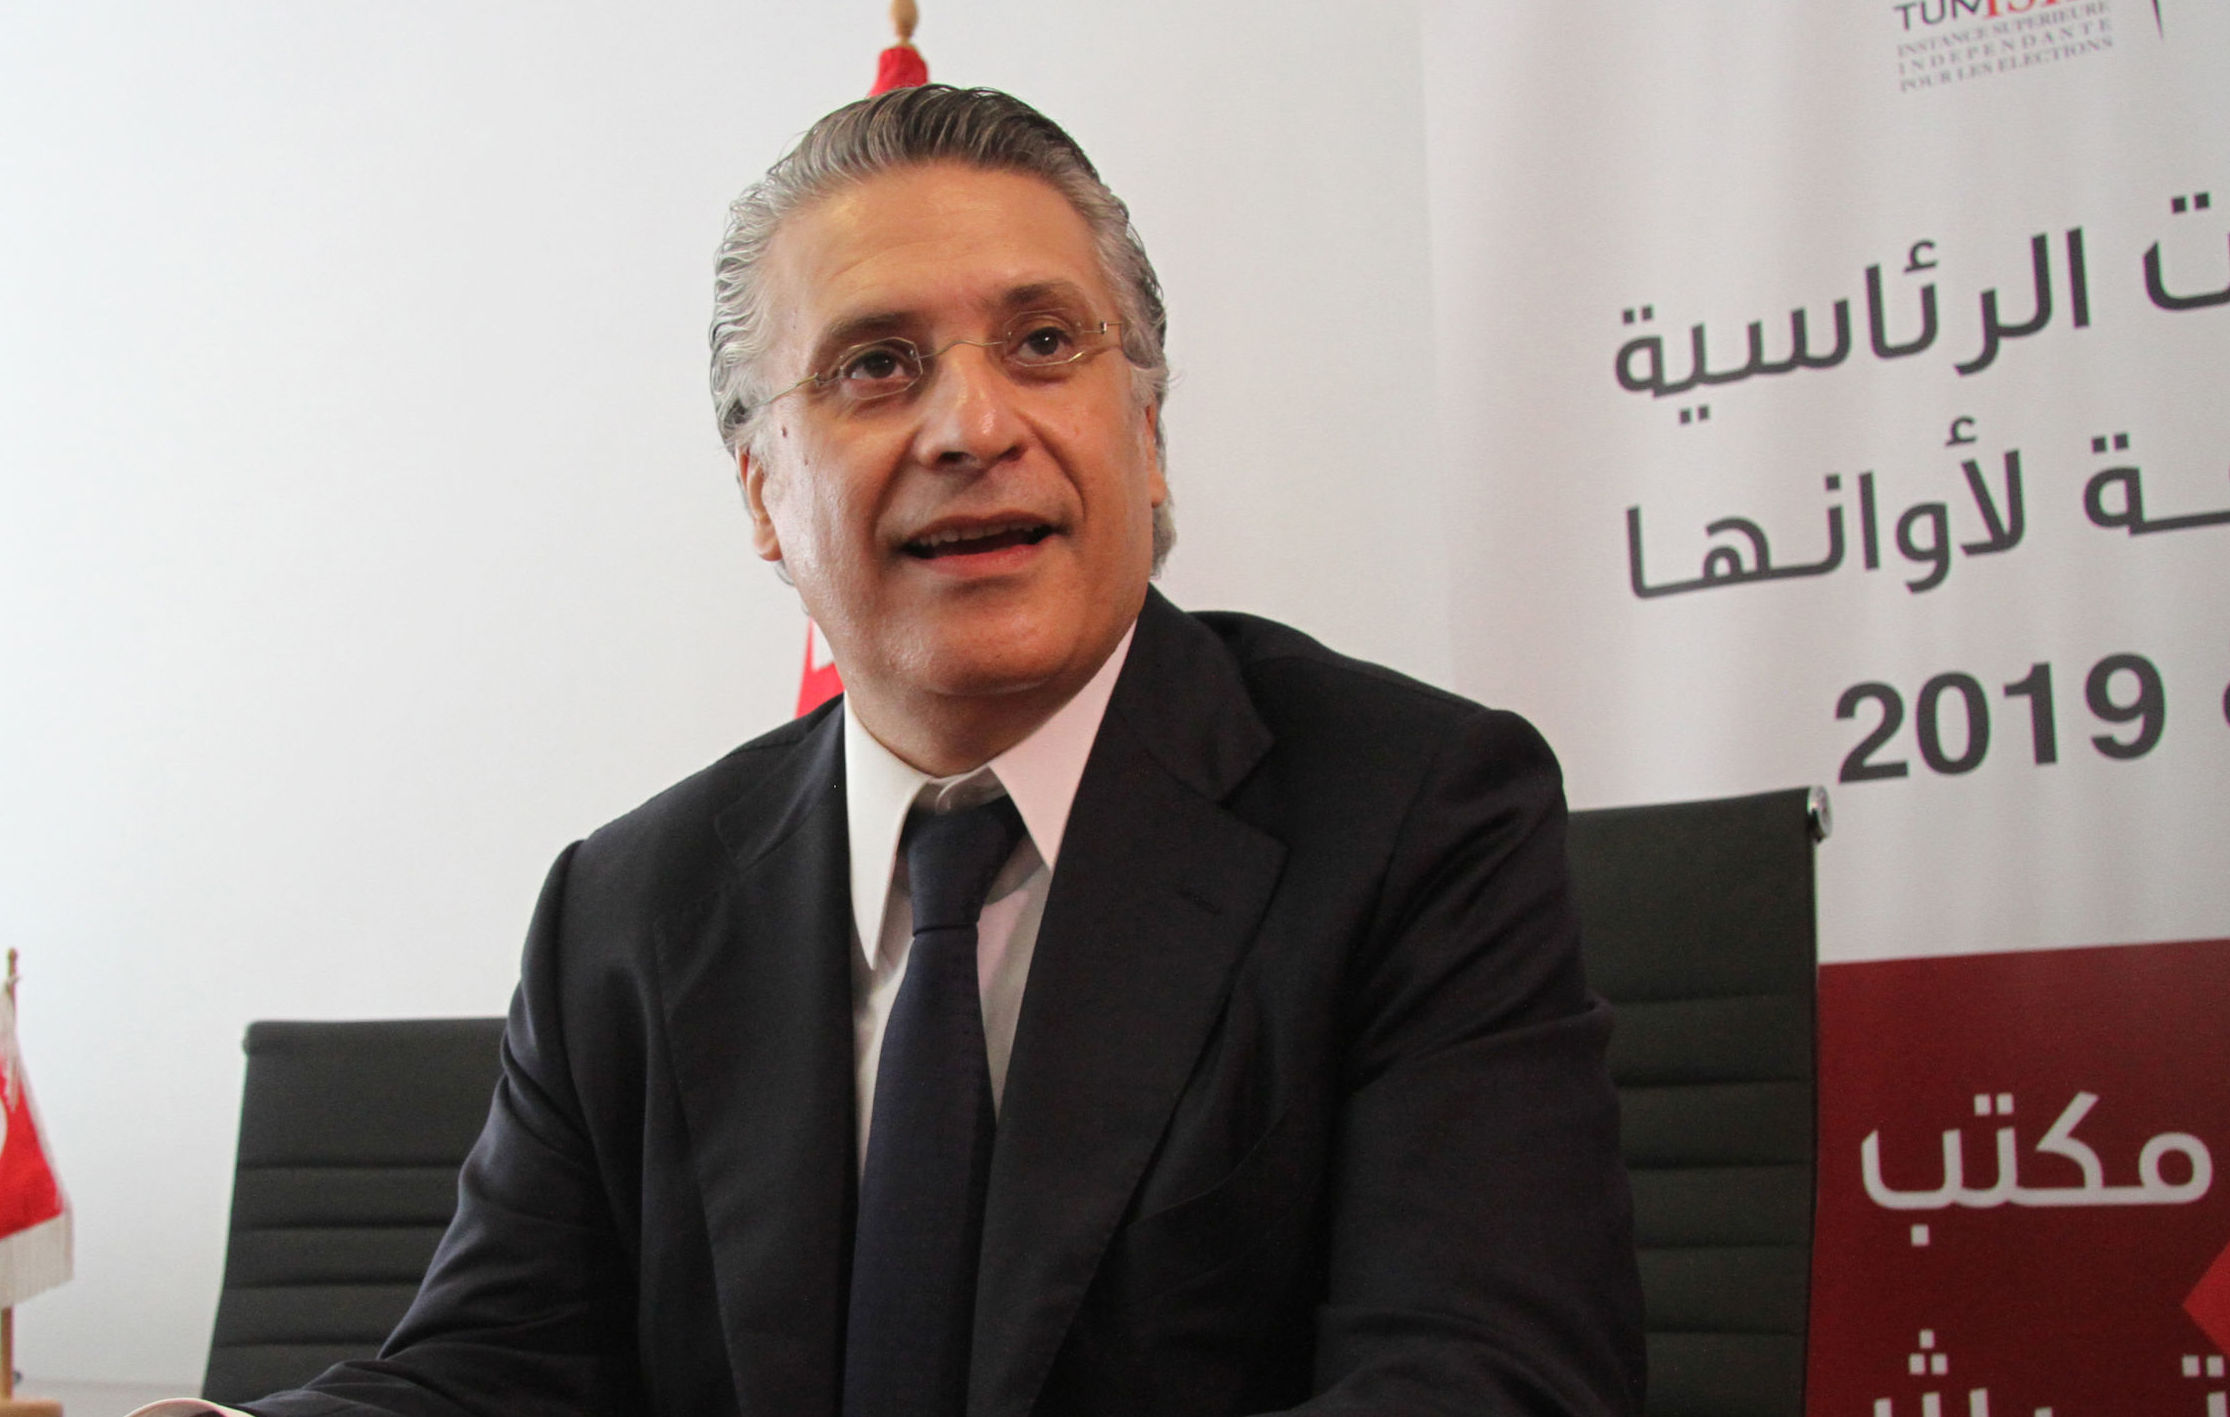 Nabil Karoui, Tunisian media magnate and would-be presidential candidate submits his candidacy to Tunisia's electoral commission in the capital Tunis on August 2, 2019.